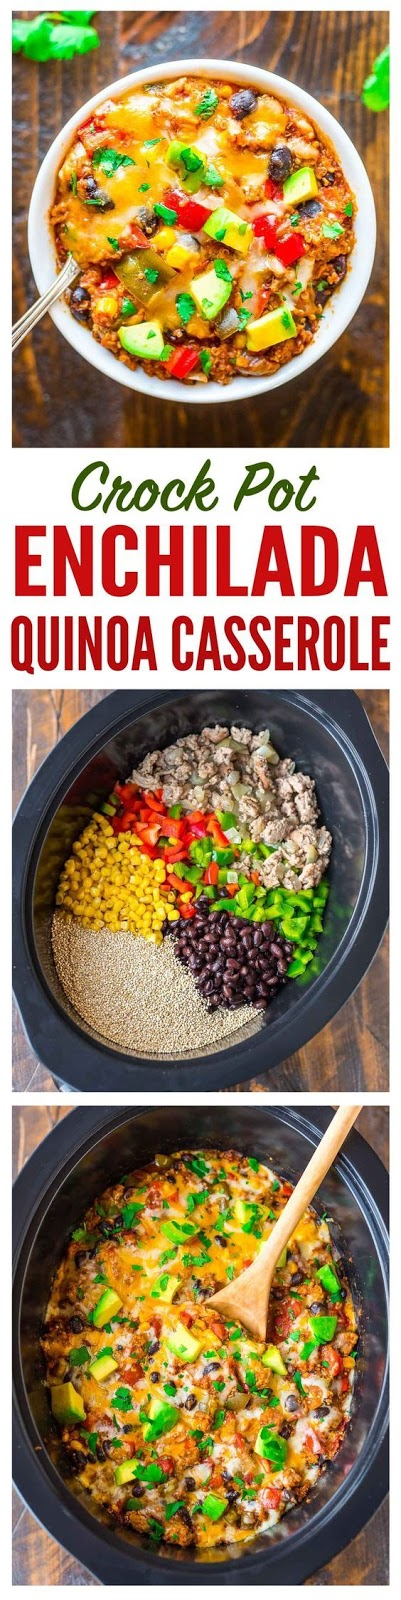 Super easy and DELICIOUS Crock Pot Mexican Casserole with quinoa, black beans, and chicken or turkey.